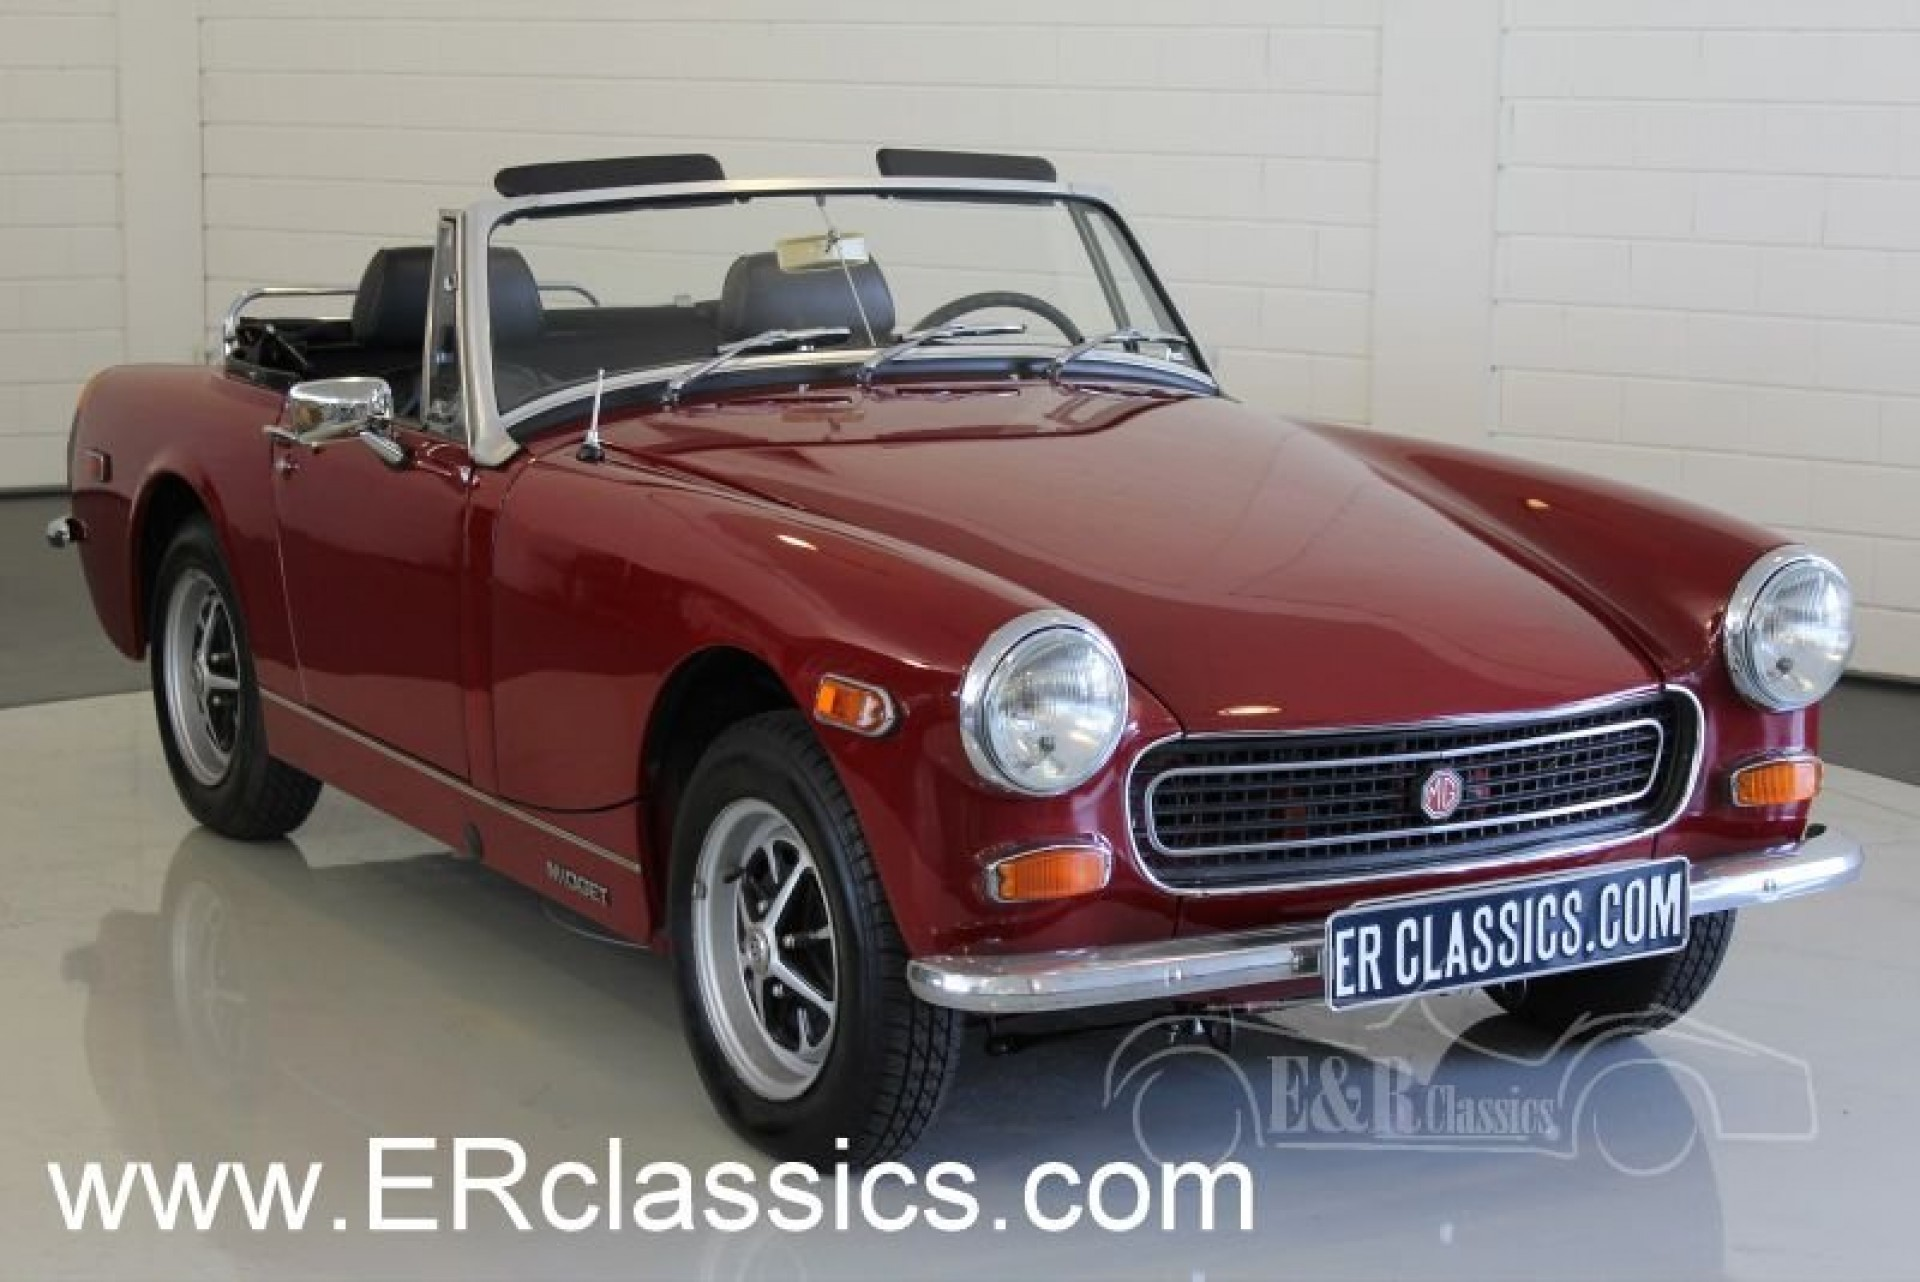 mg midget mk iii roadster 1974 for sale at erclassics. Black Bedroom Furniture Sets. Home Design Ideas